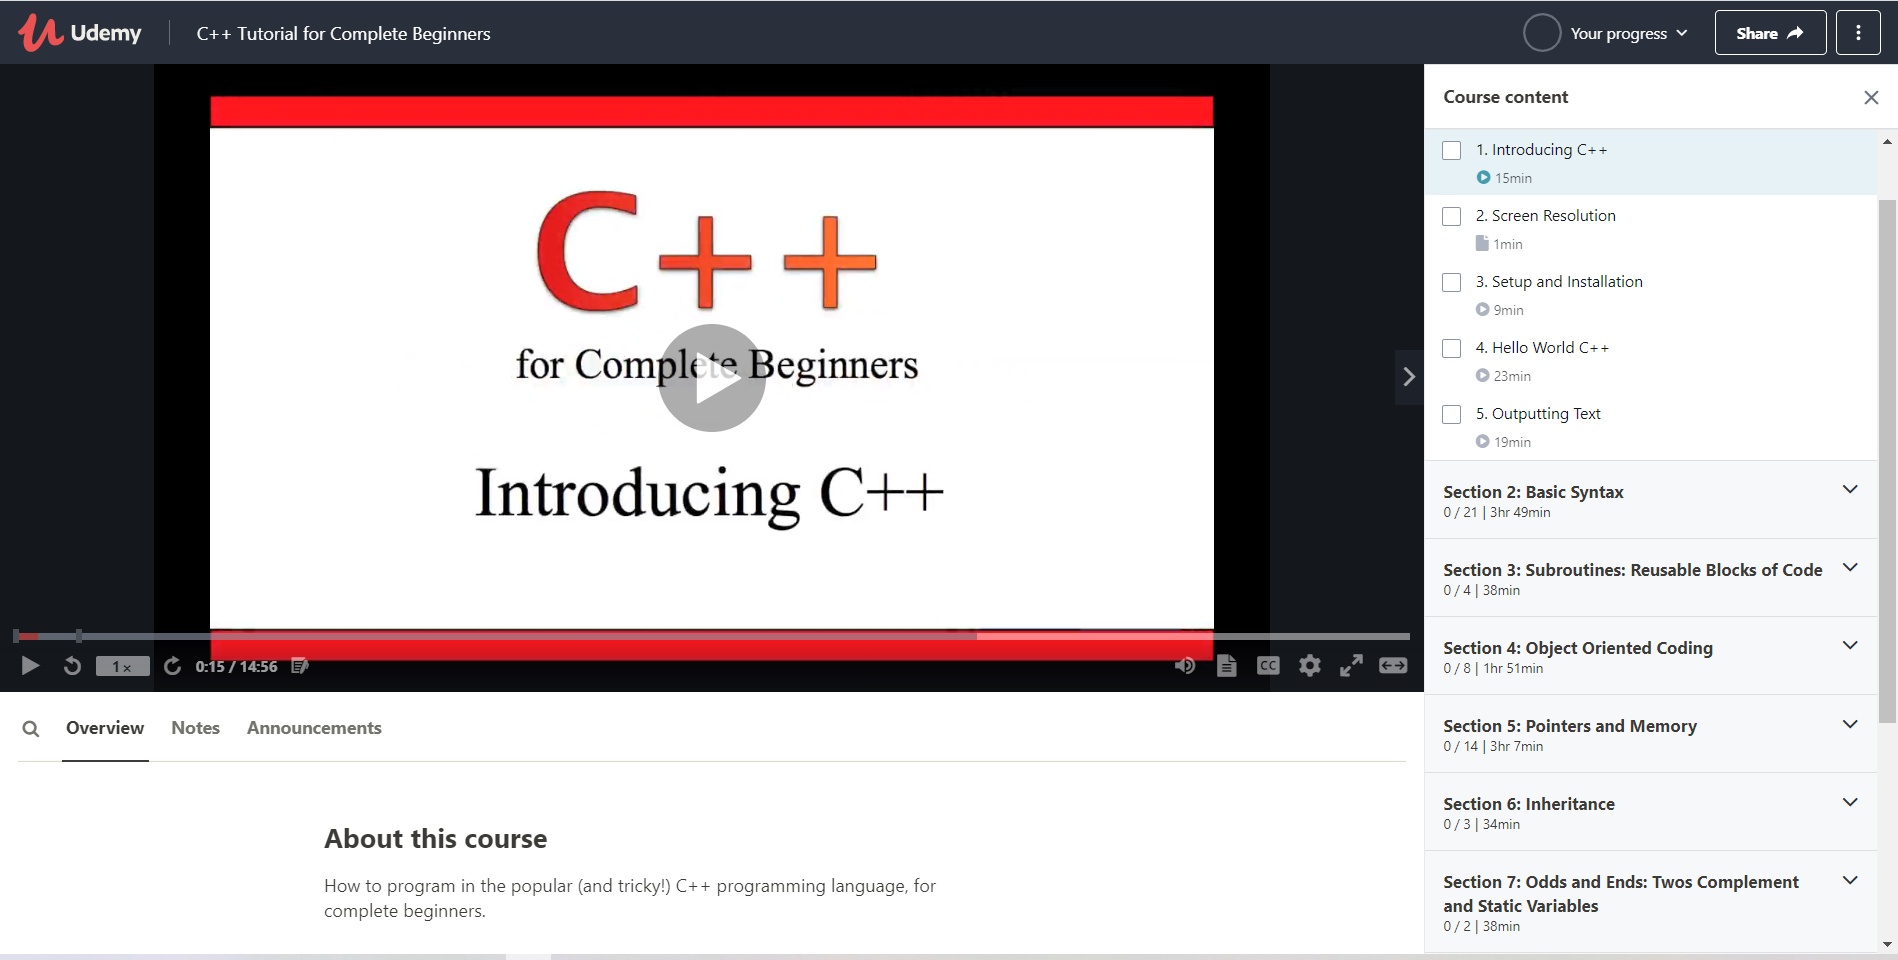 C++ for beginers